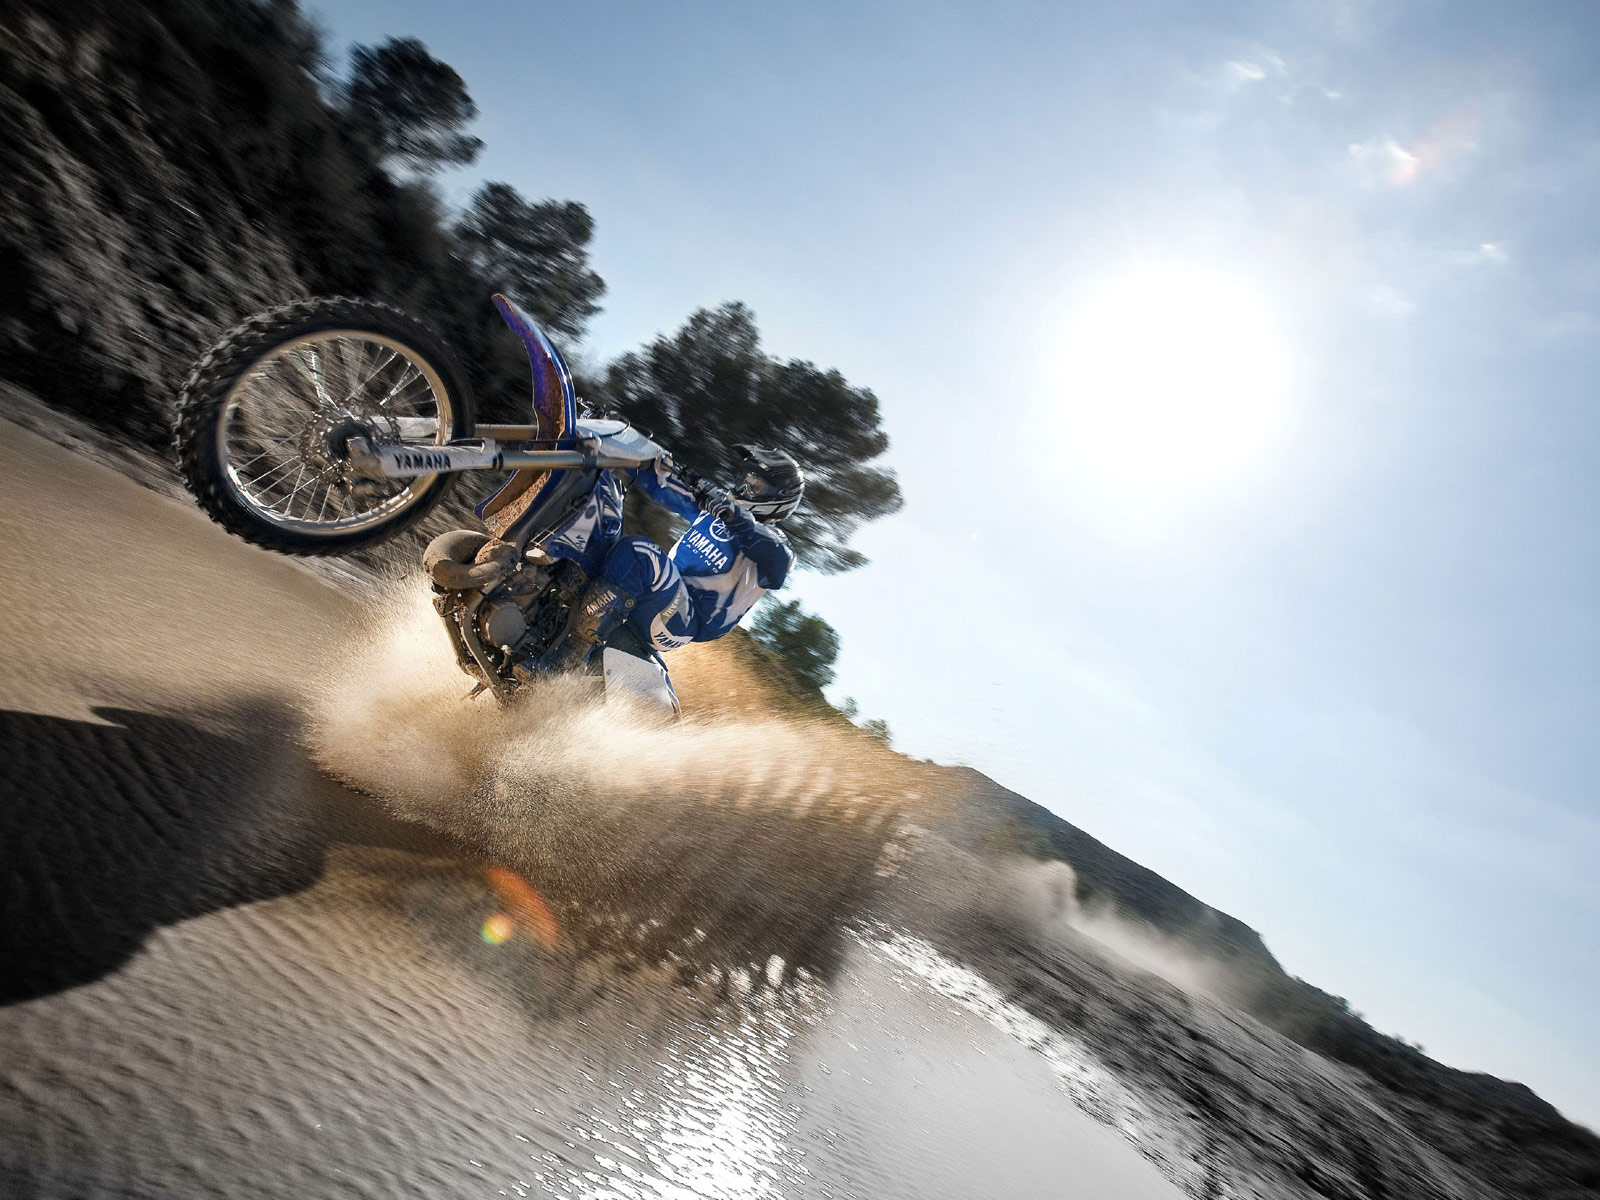 Yamaha's off road bike saga